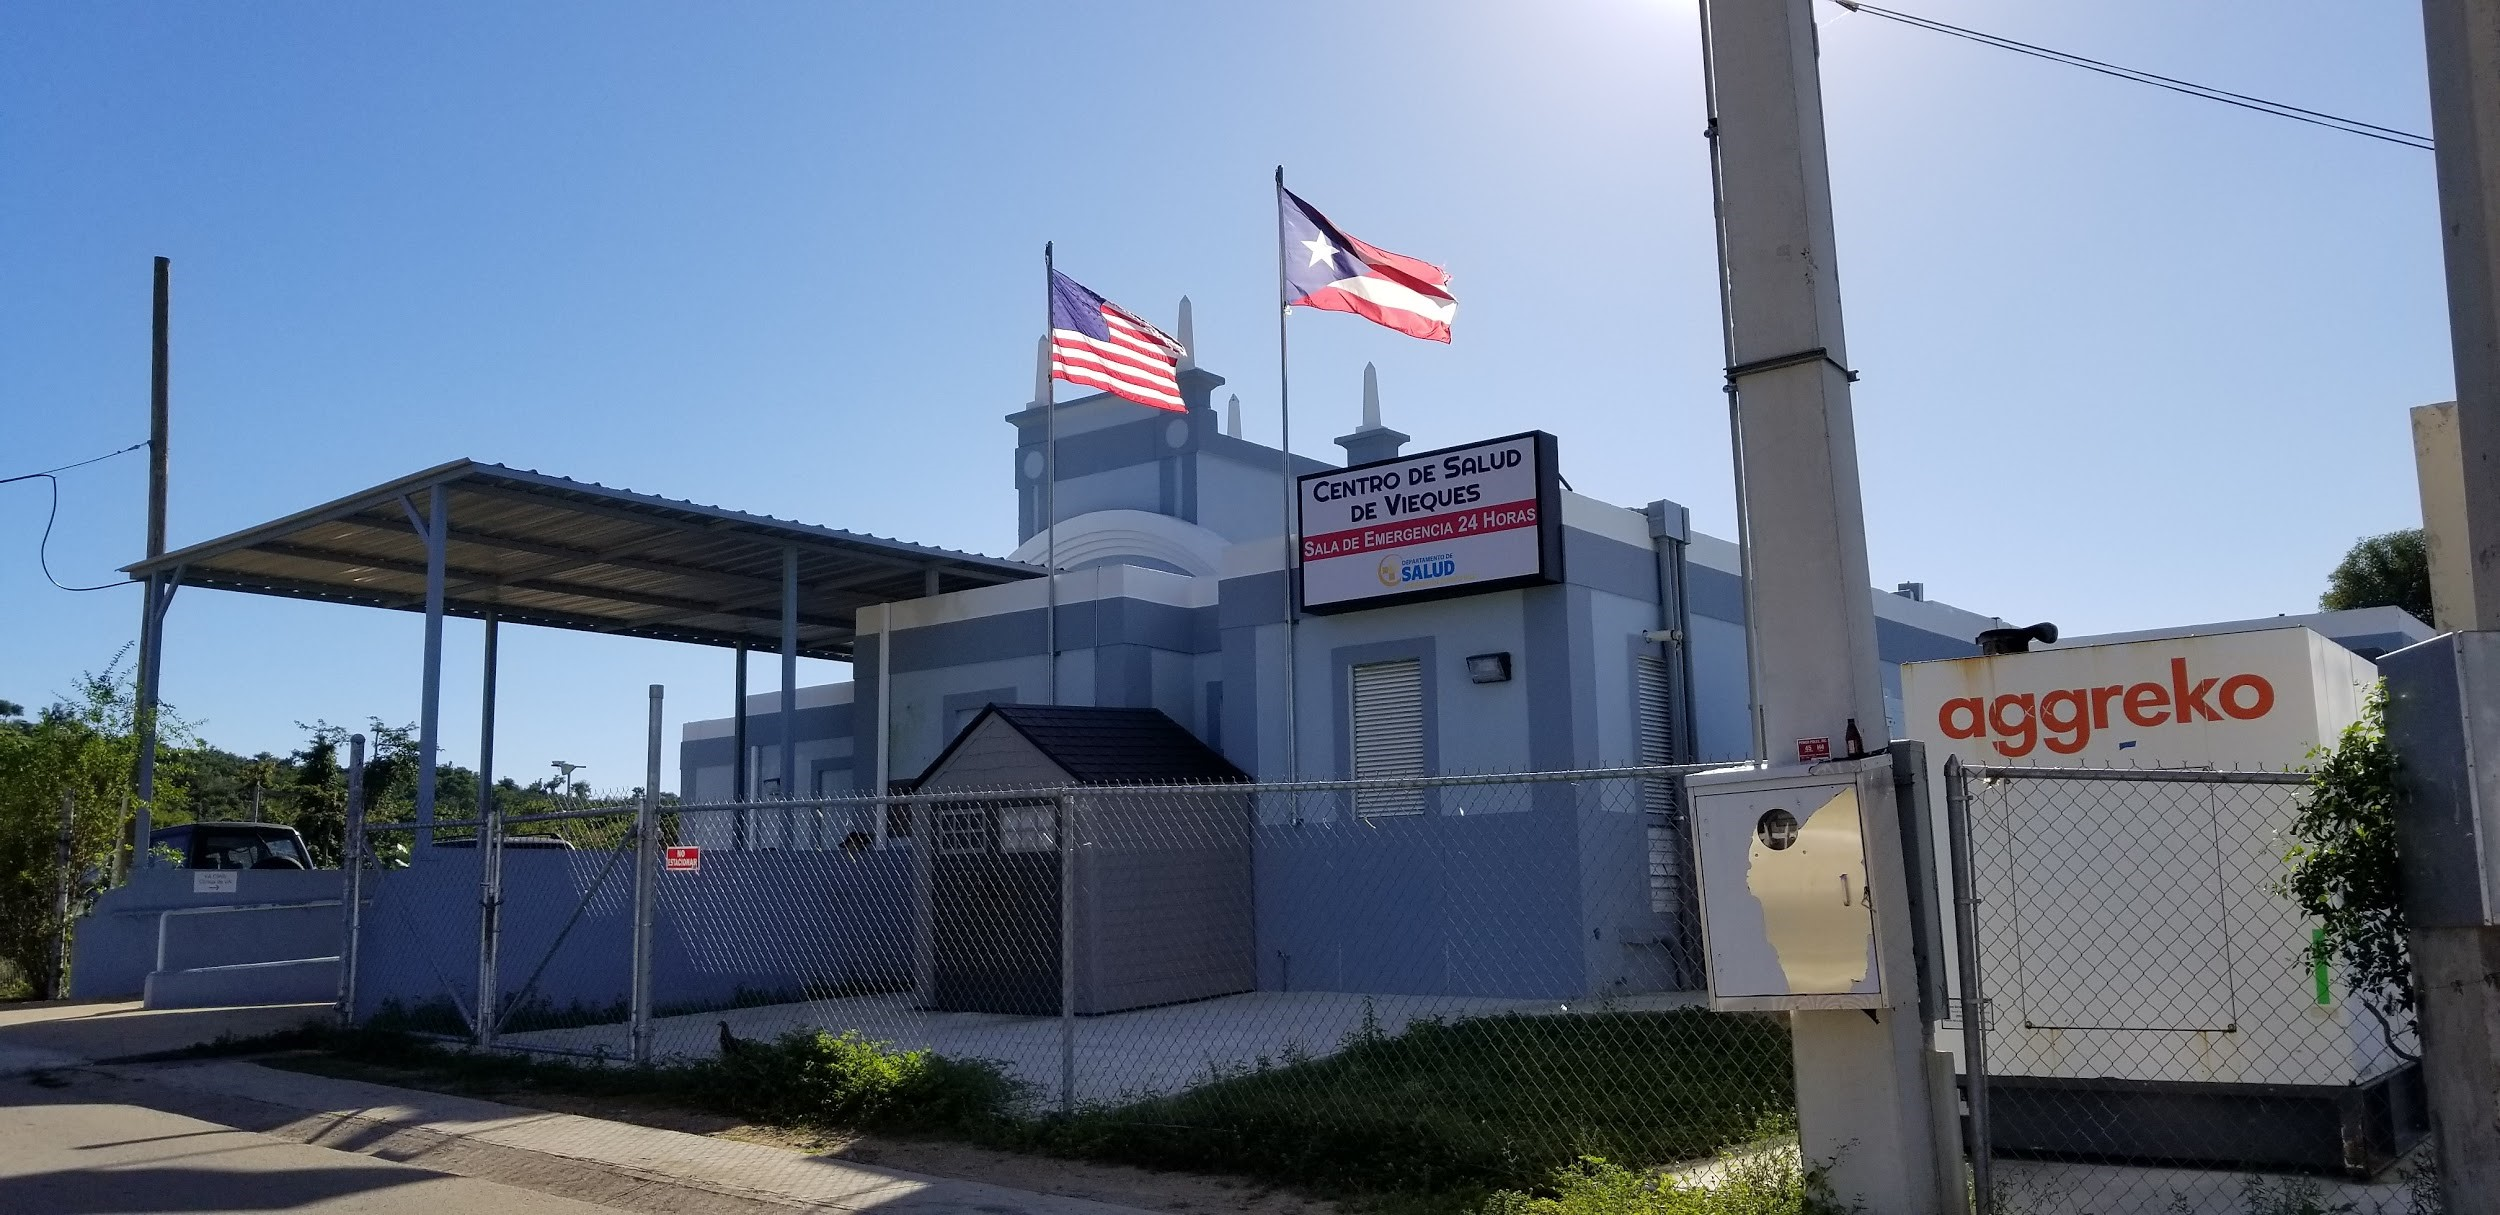 the temporary hospital in vieques, powered by a diesel generator